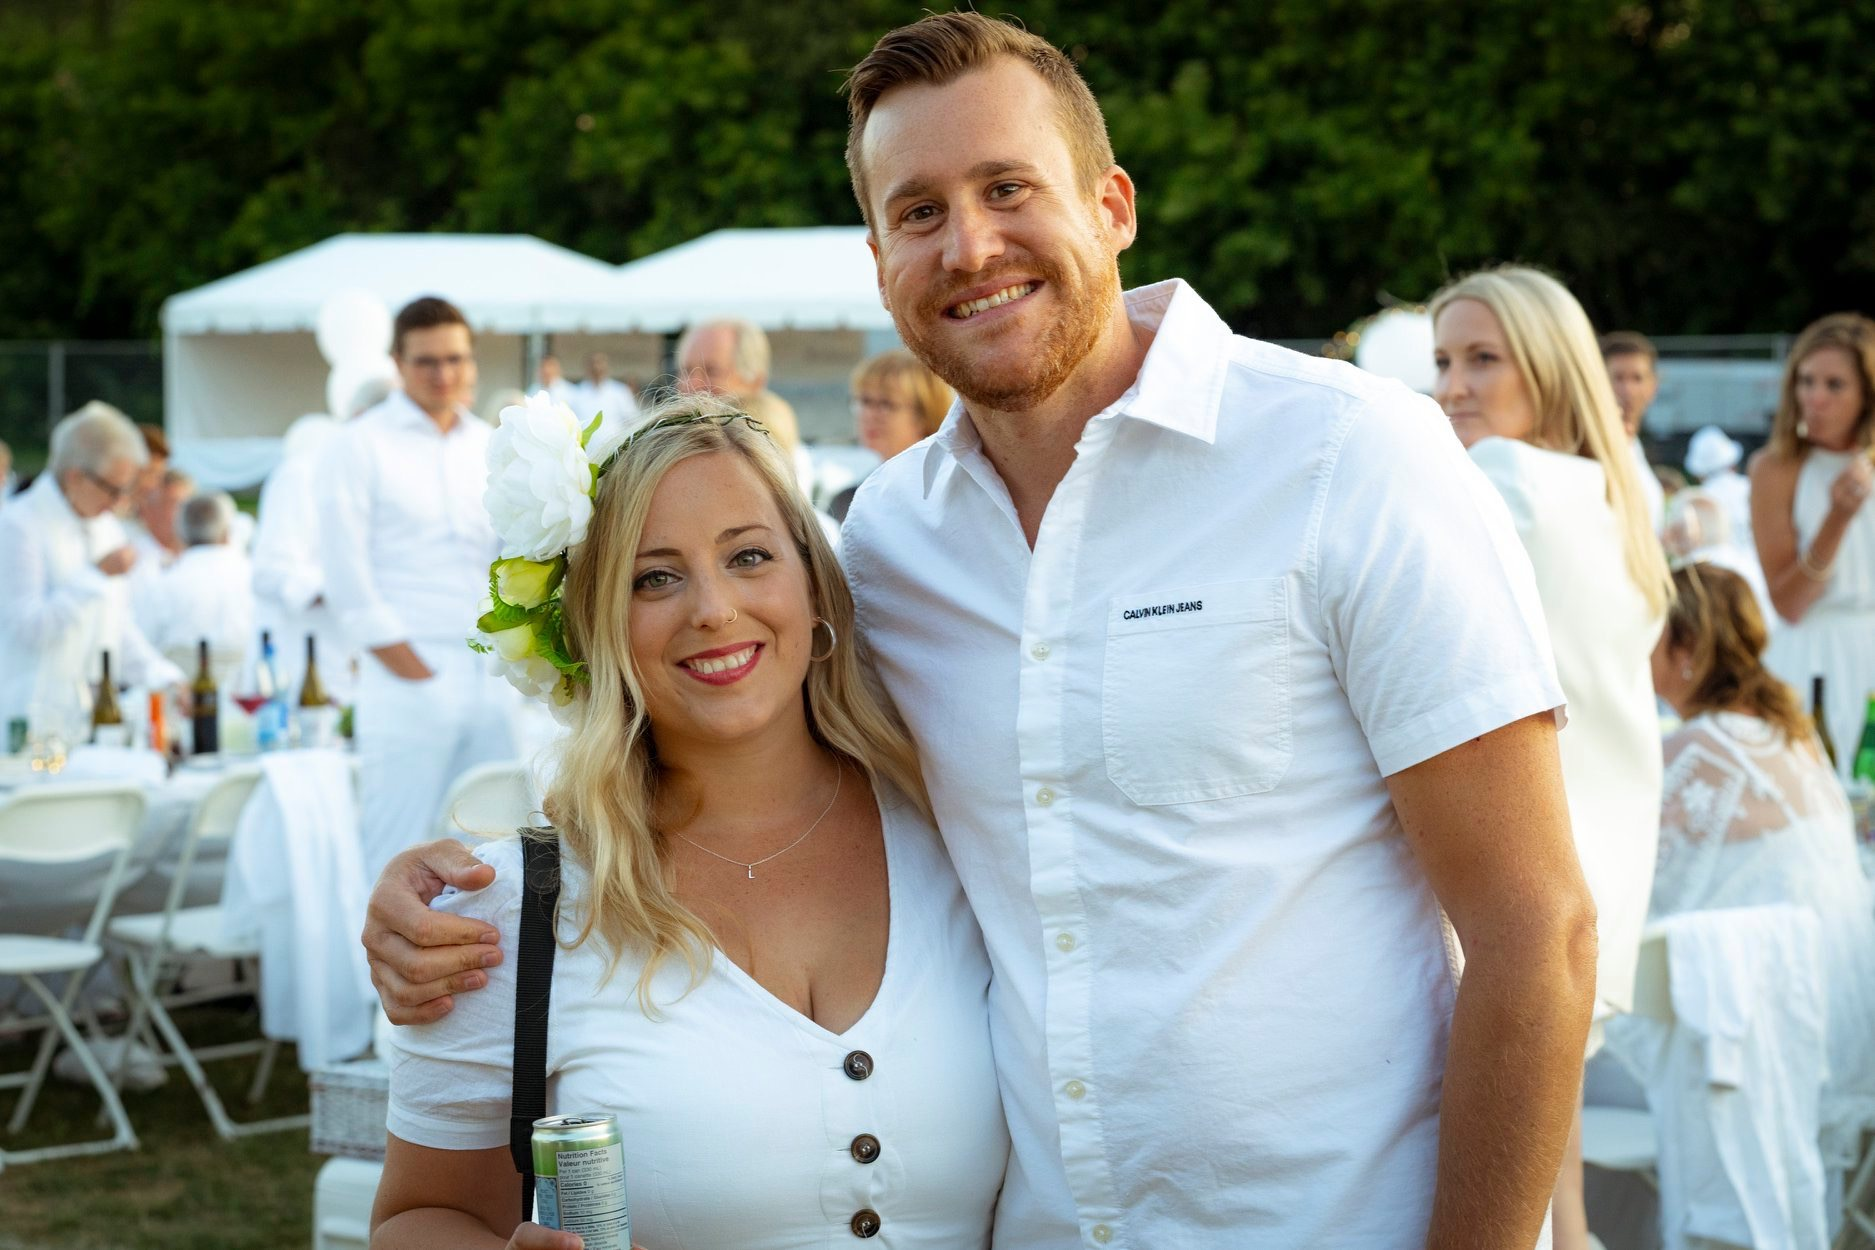 Laura Conning and Nelson Beattie.  NOT taken by me.  Courtesy of a Diner en Blanc photographer.